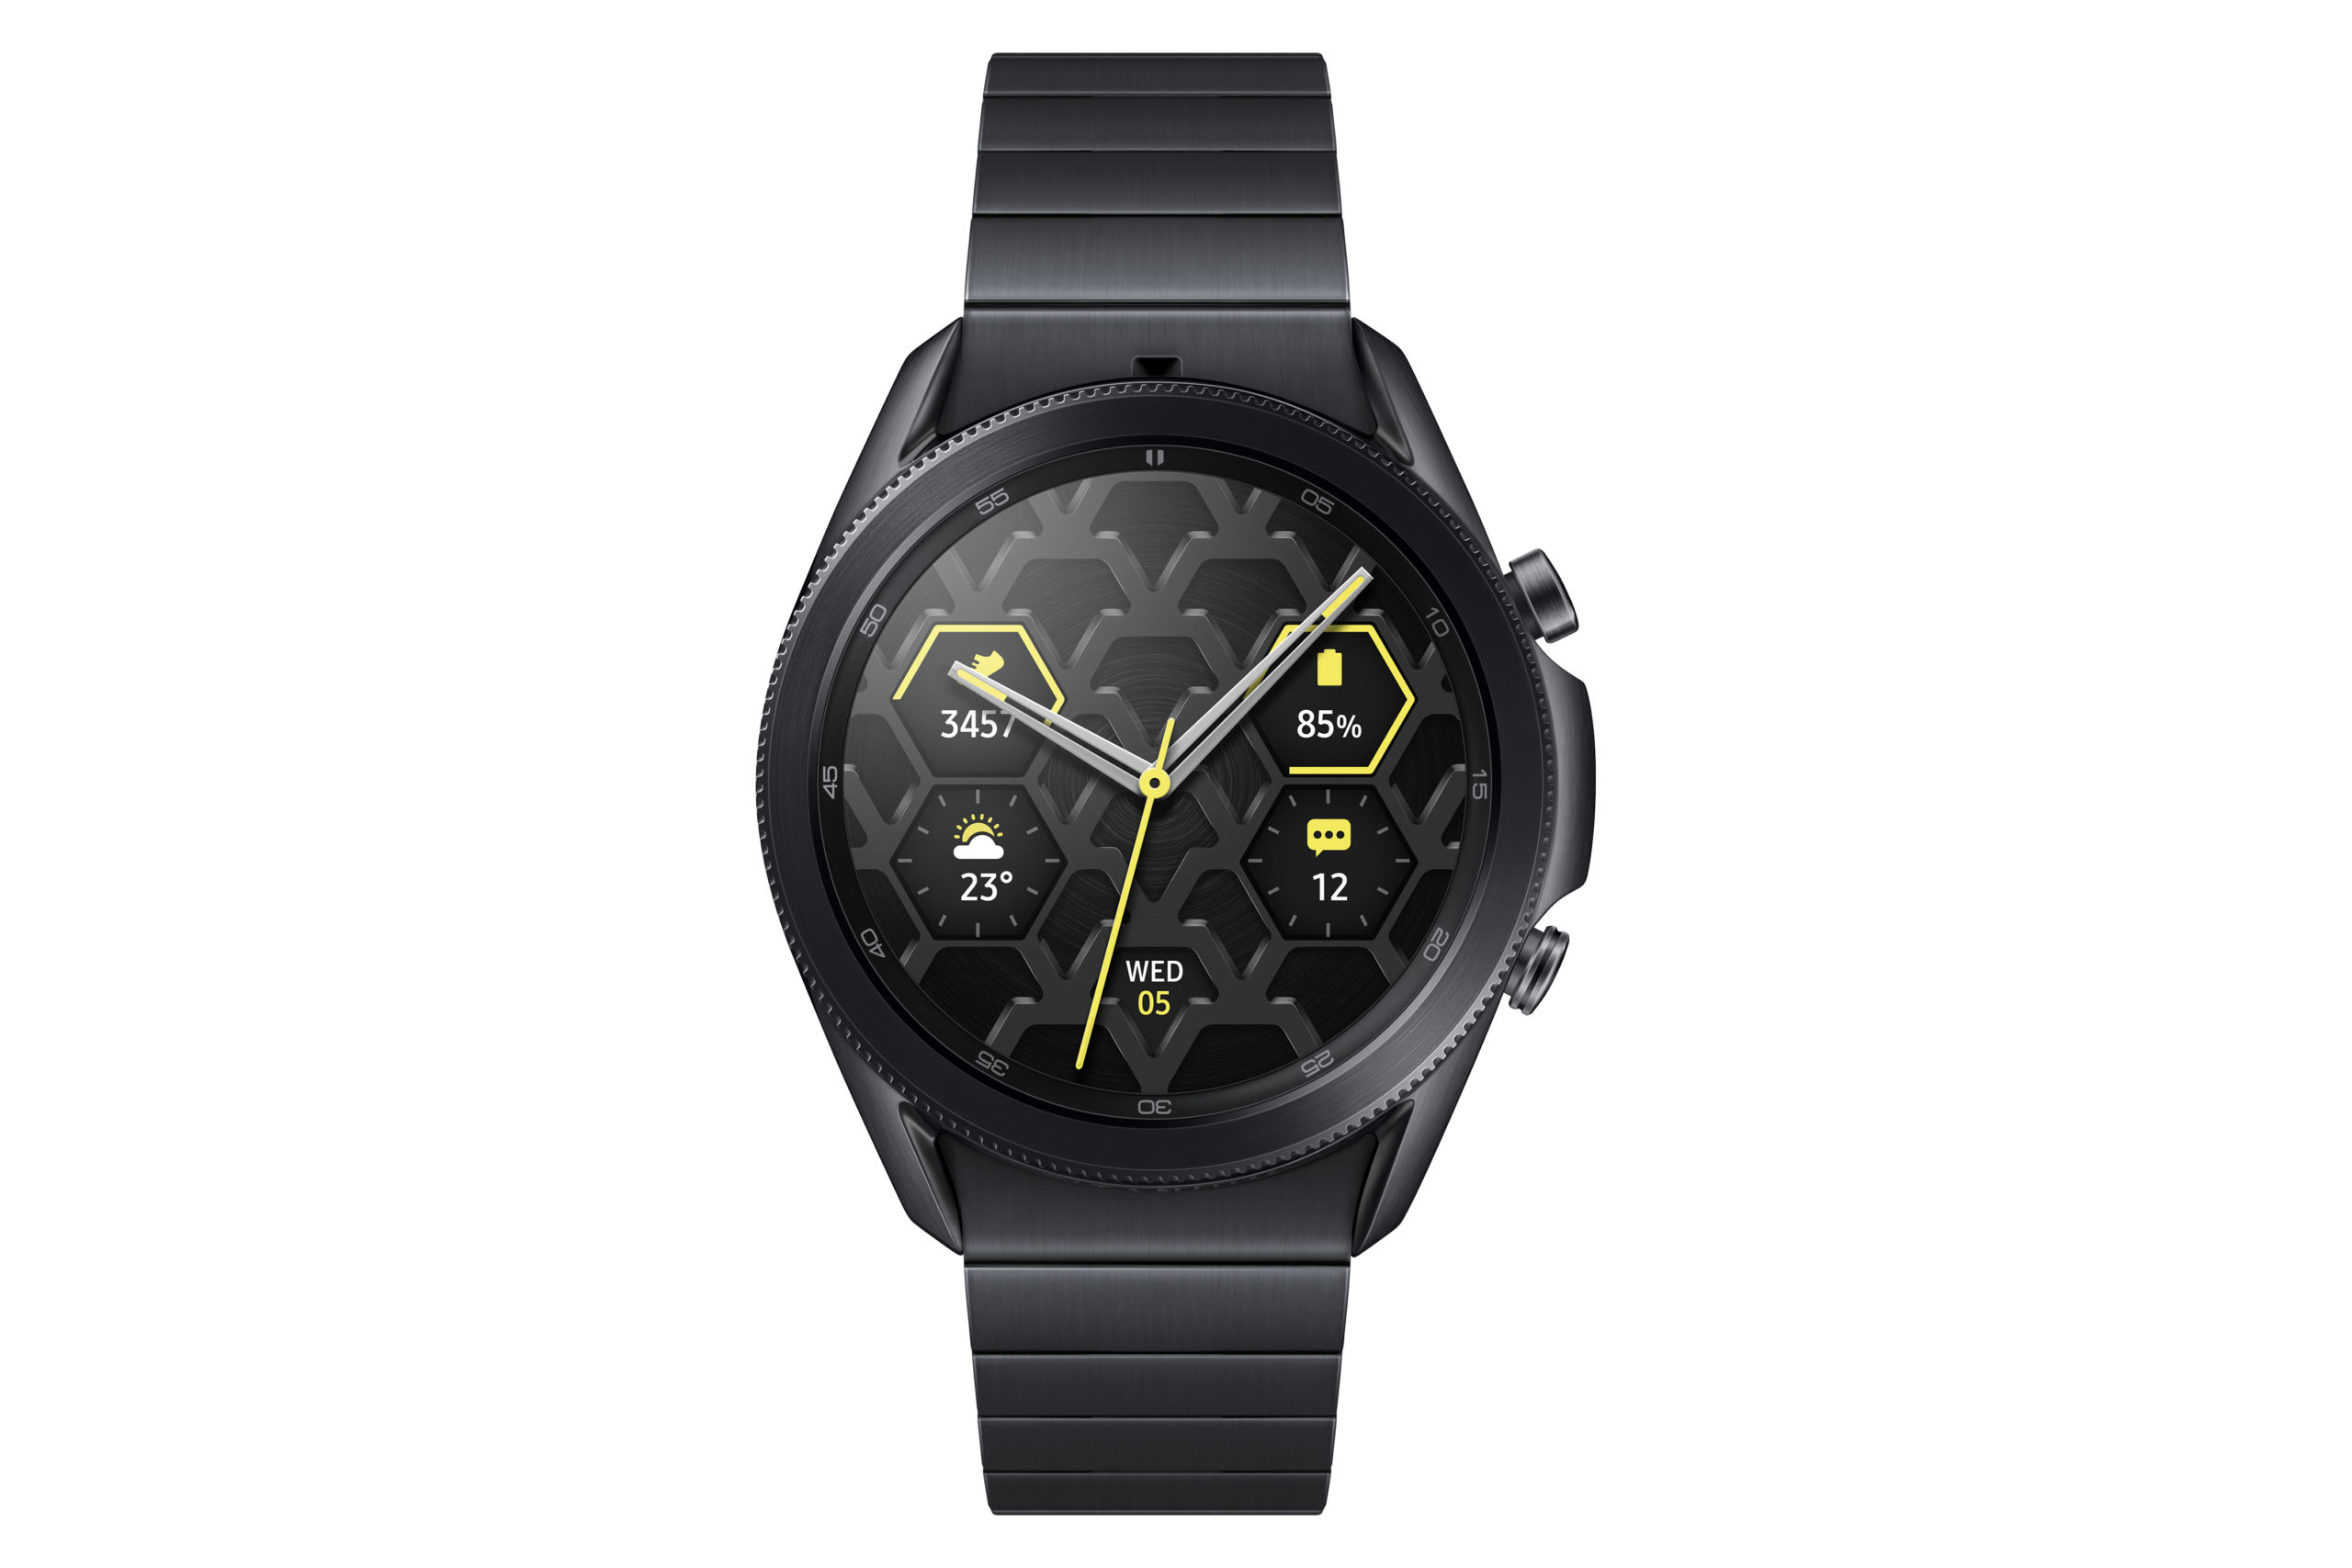 Samsung Galaxy Watch 3 Titanium Model Global Rollout Begins September 18